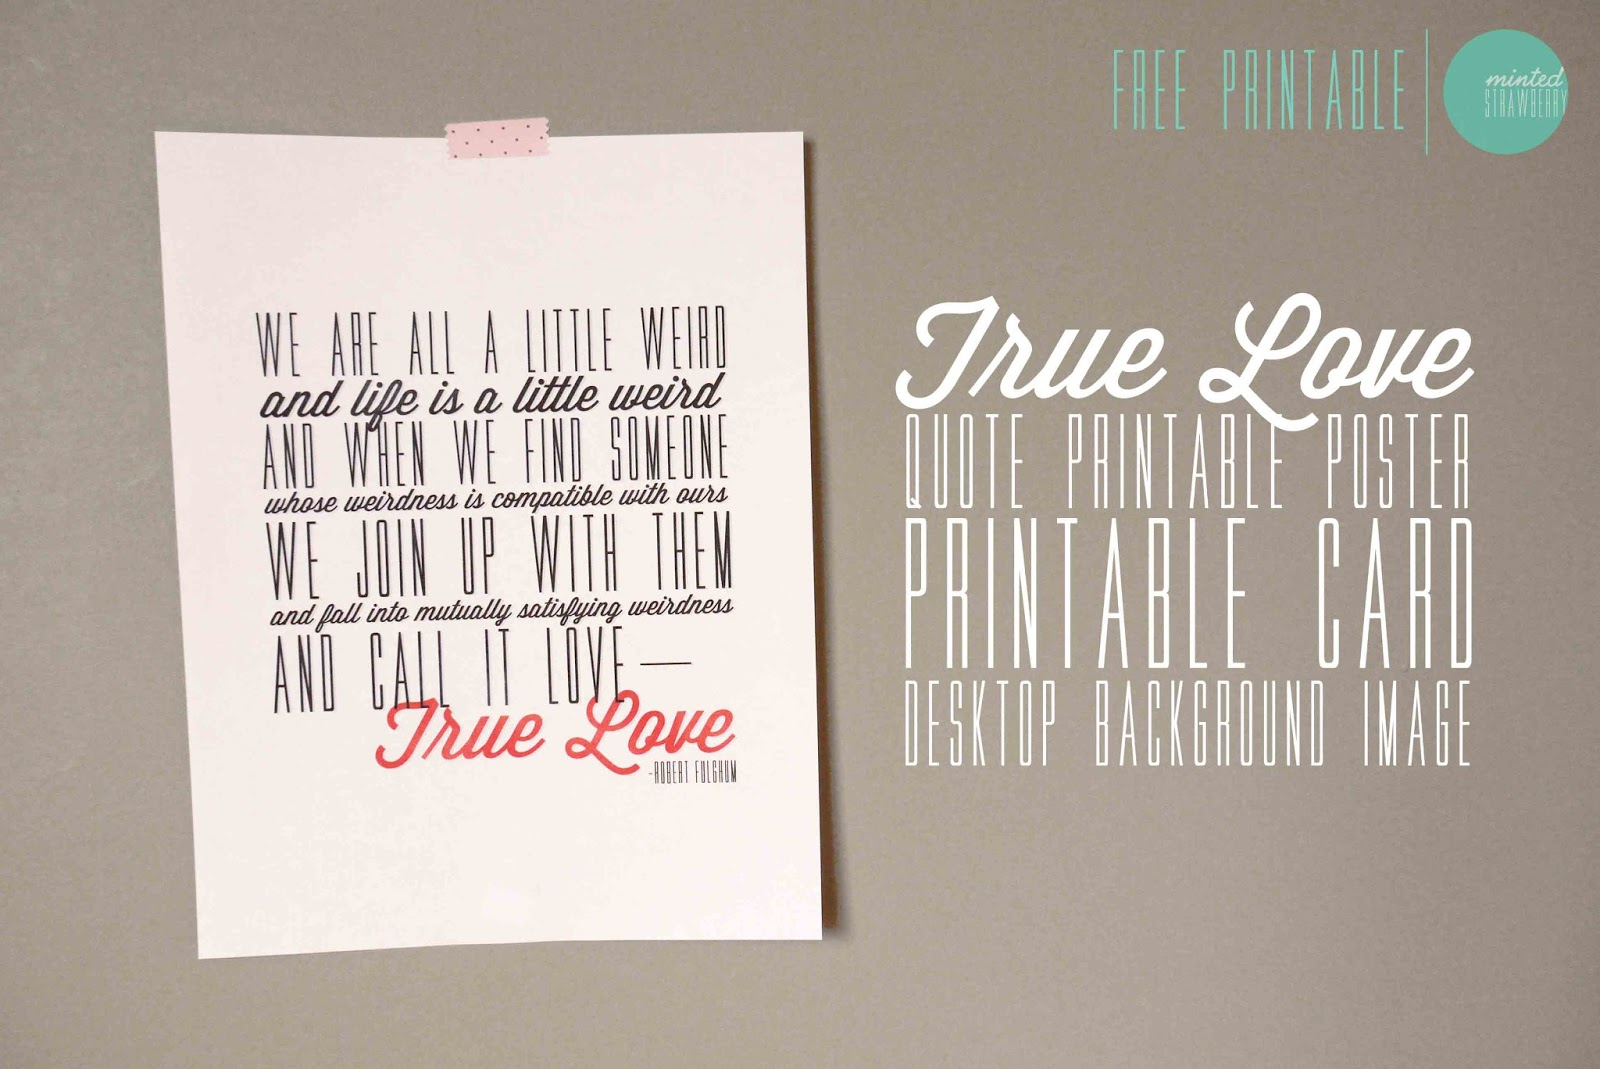 Life Quote Poster Free Printable Robert Fulghum's 'true Love' Quote Poster  Minted